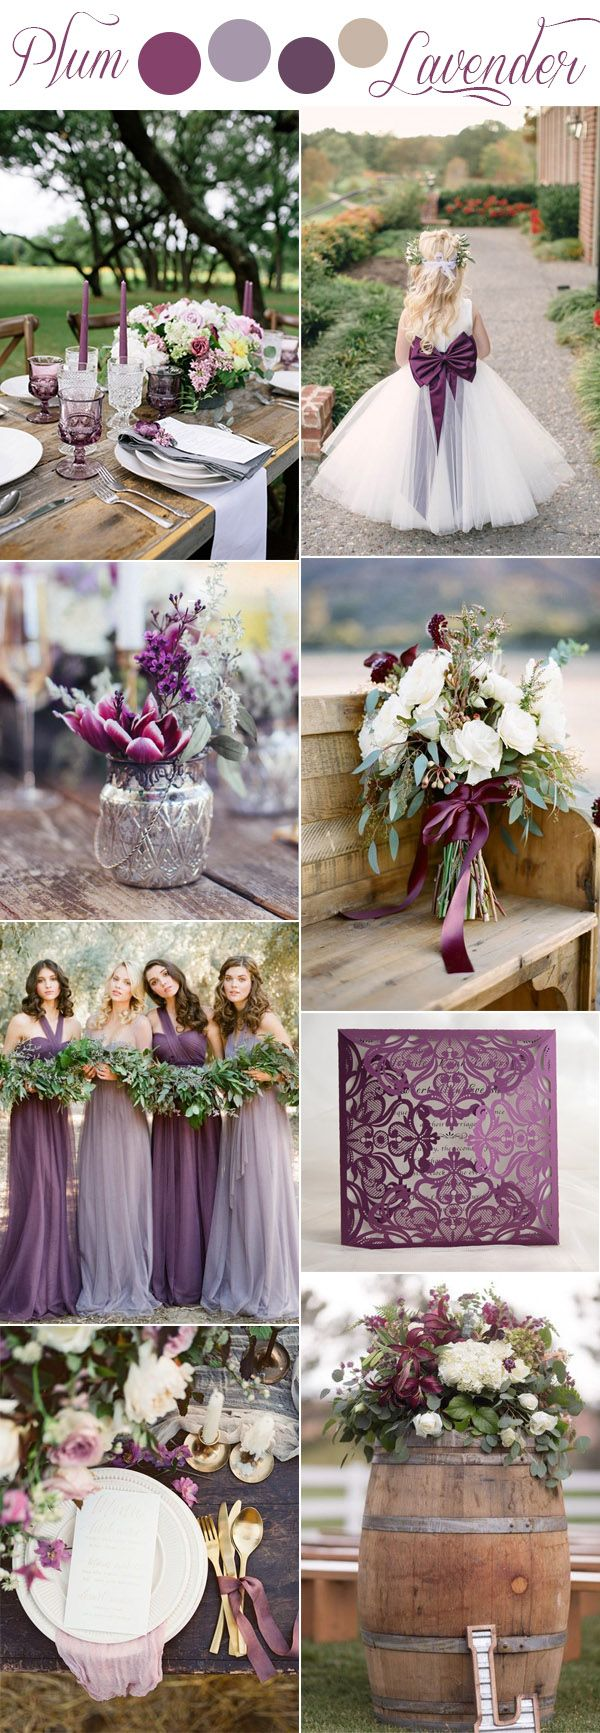 7 gorgeous rustic romantic and elegant wedding ideas color 7 gorgeous rustic romantic and elegant wedding ideas color palettes junglespirit